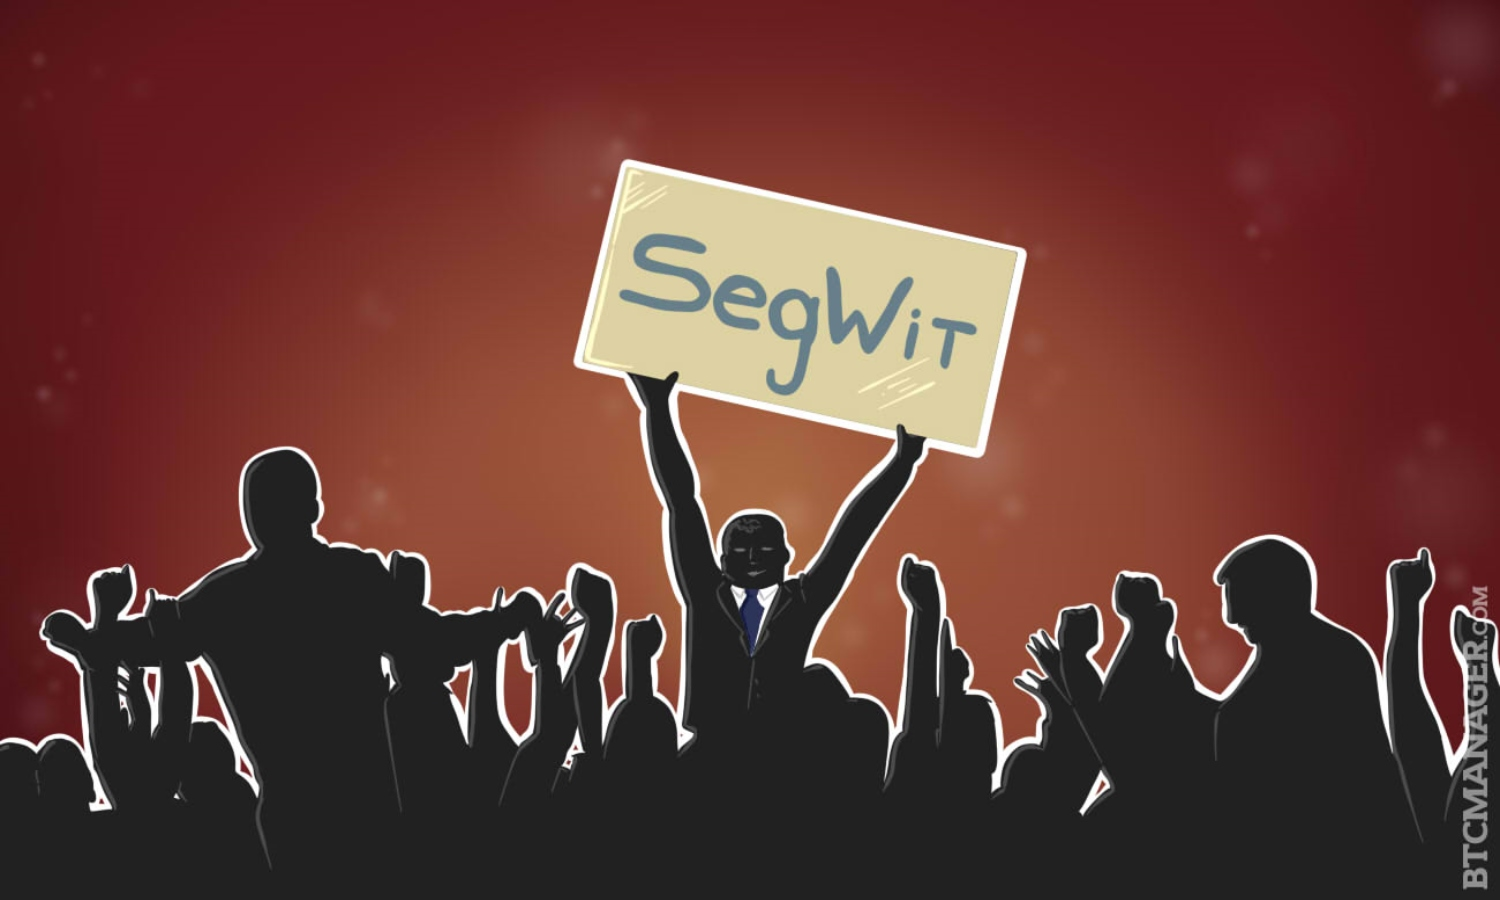 SegWit: Unconfirmed Transactions Rise With Bitcoin Price Again